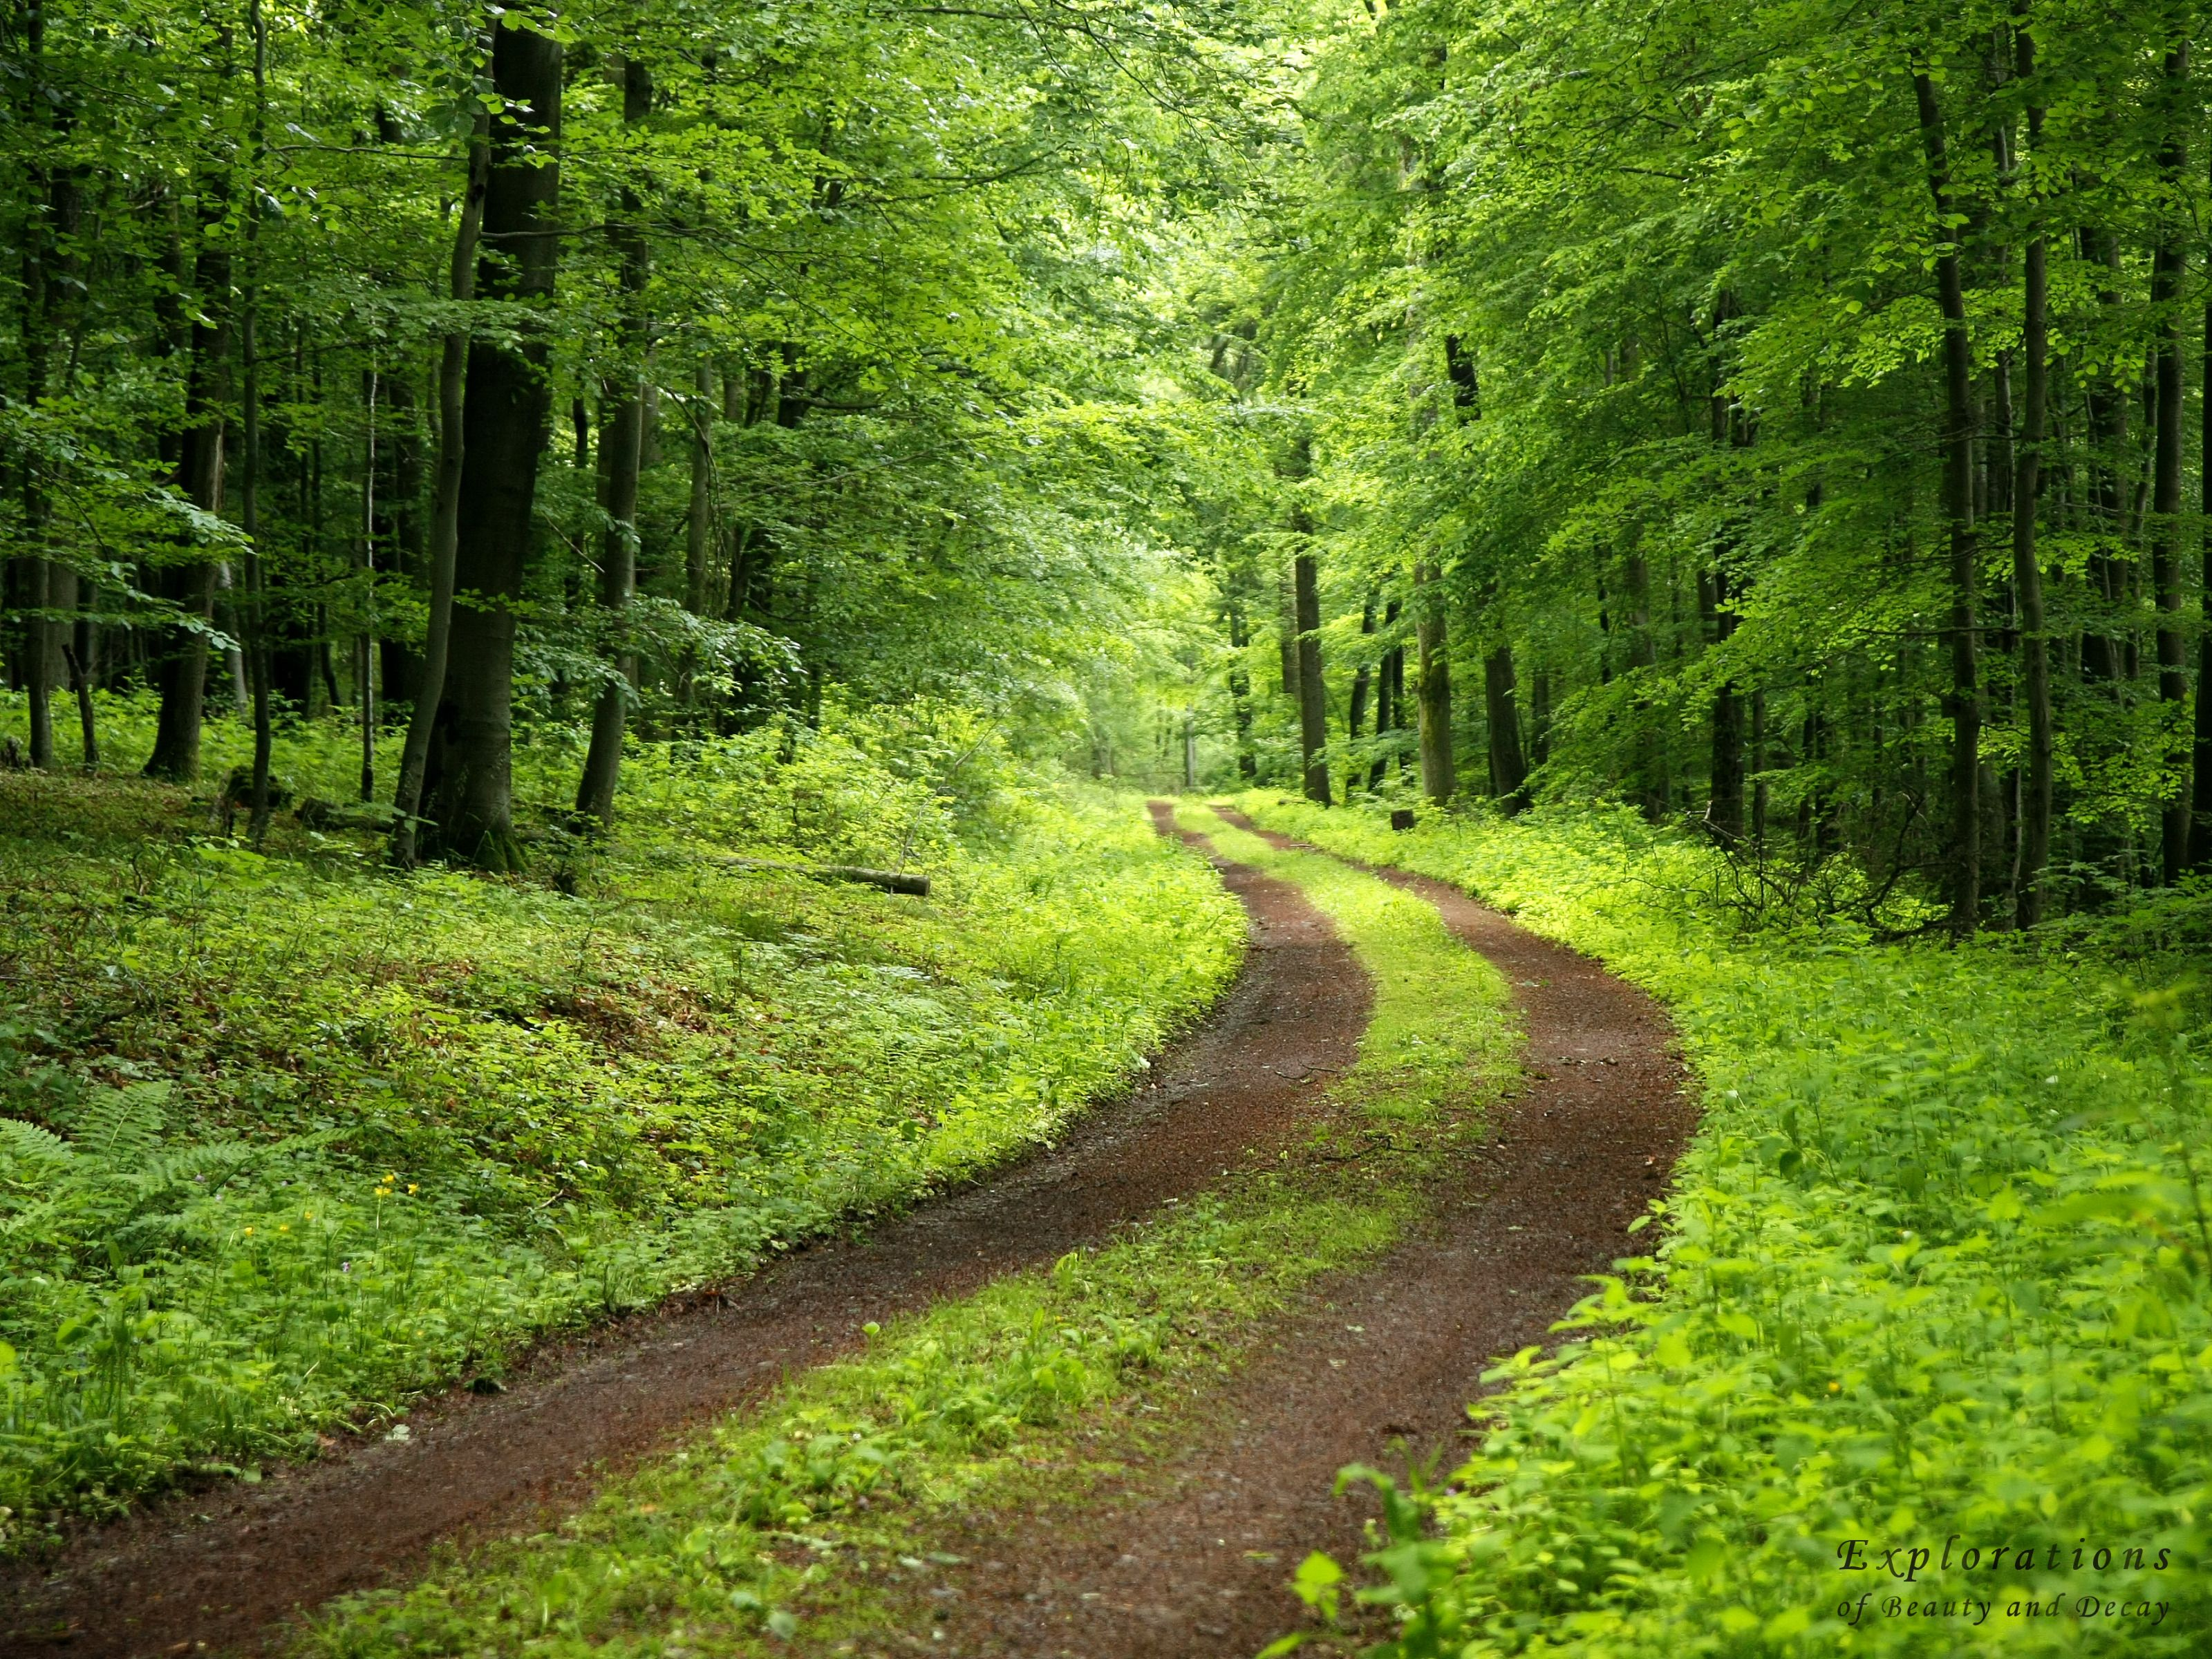 Forest Trail Nature Wallpaper Hd Nature Wallpapers Green Nature Wallpaper